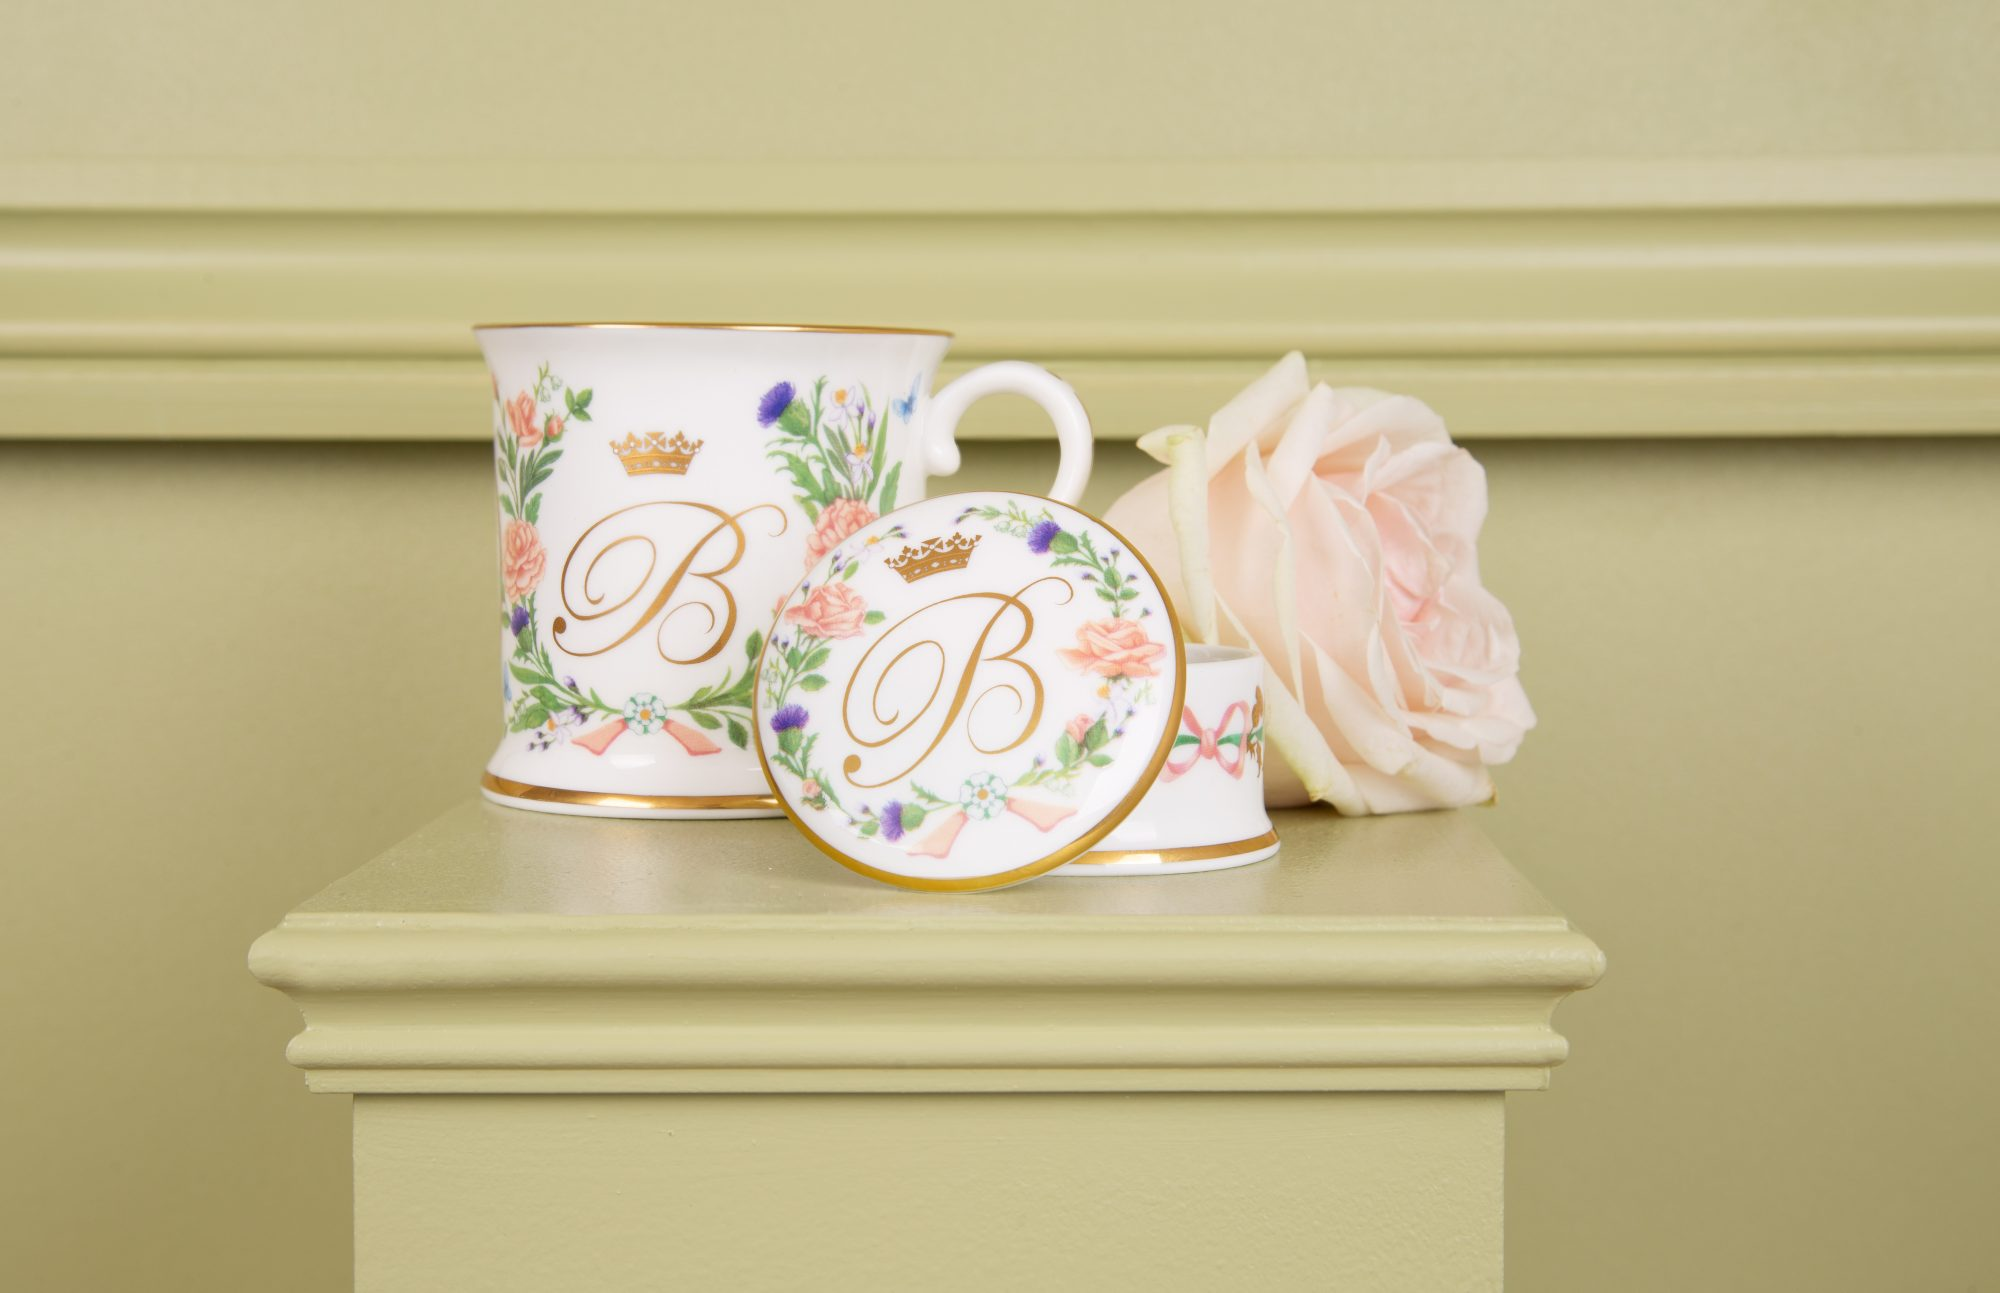 Princess Beatrice's commemorative gifts